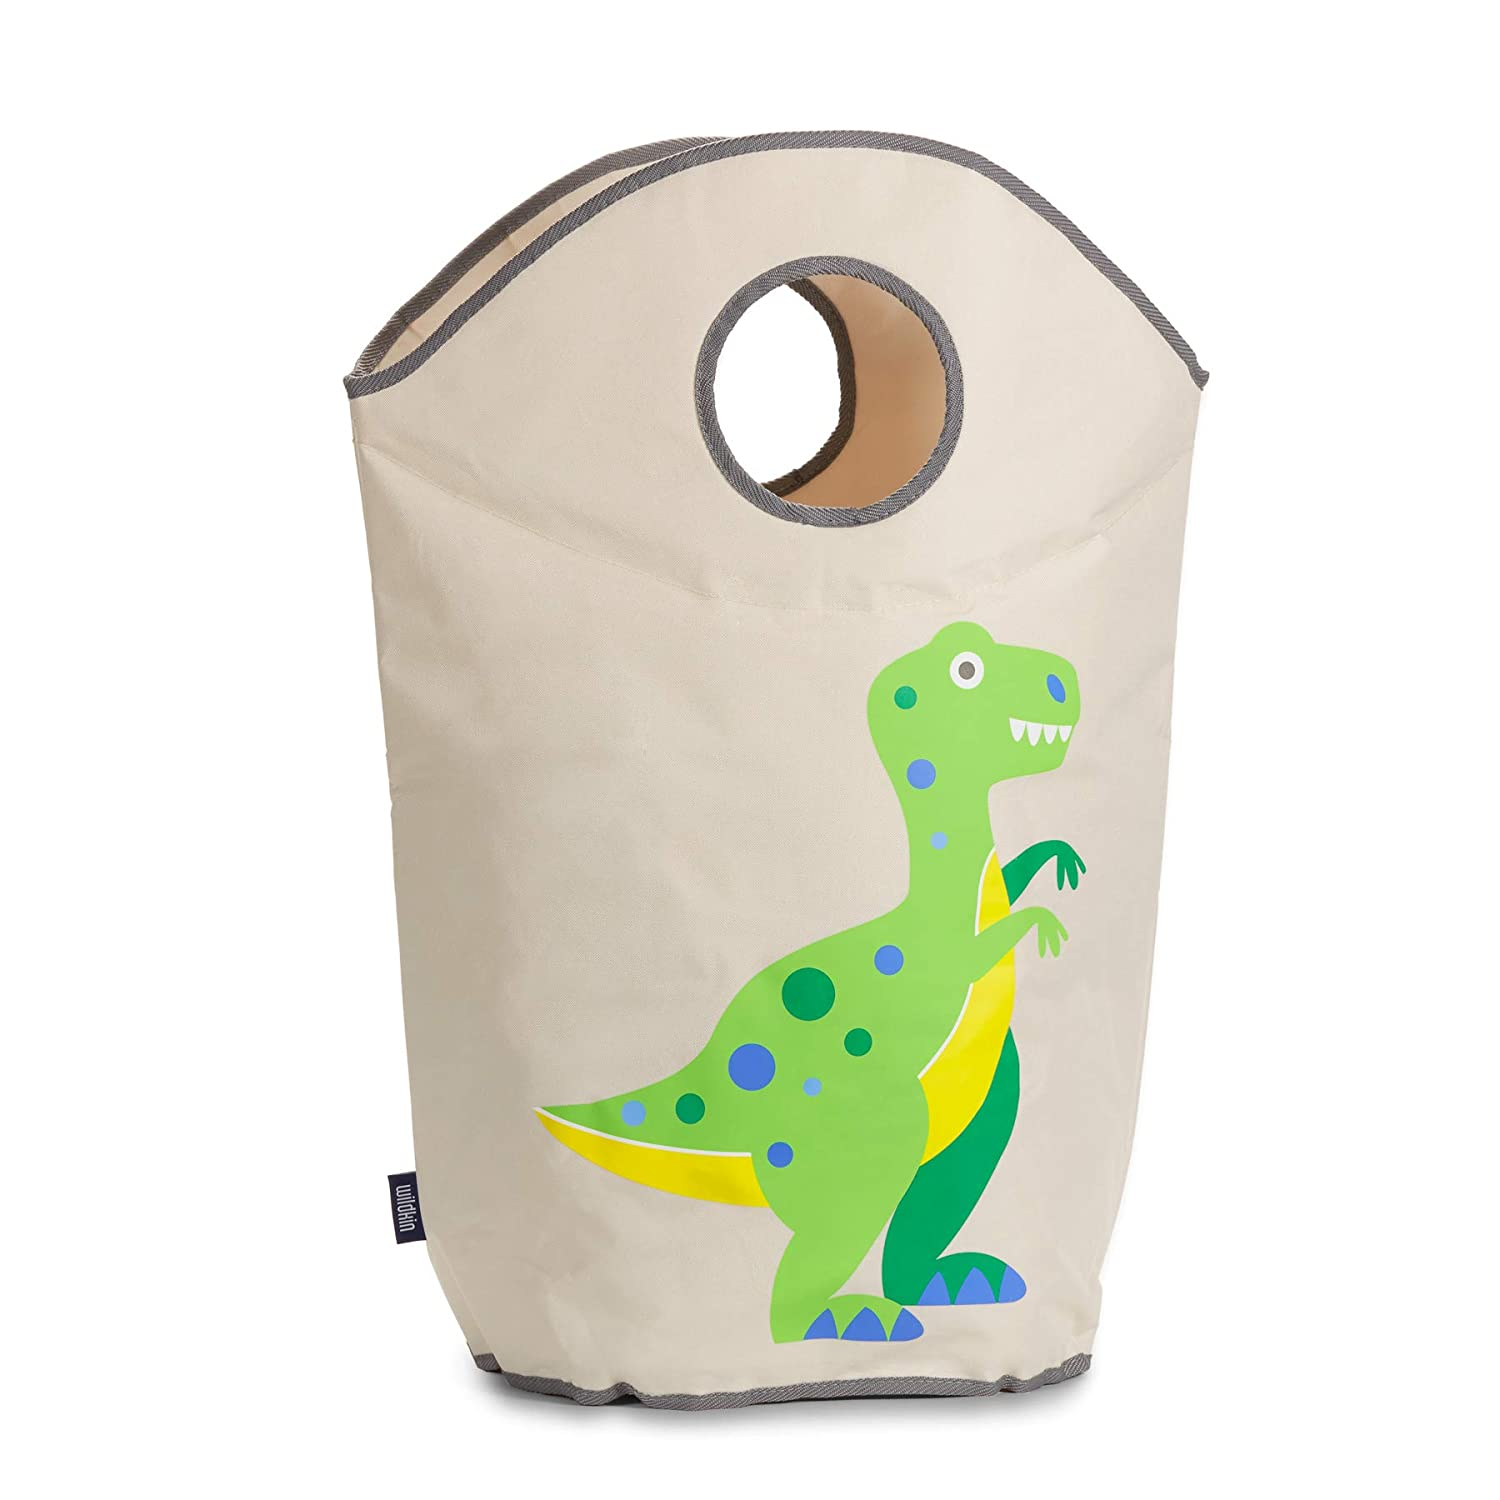 Wildkin Laundry Hamper, Features Mesh Bottom and Two Top Carrying Handles, Perfect for Promoting Organization, Coordinates with Other Room Décor, Olive Kids Design – Train